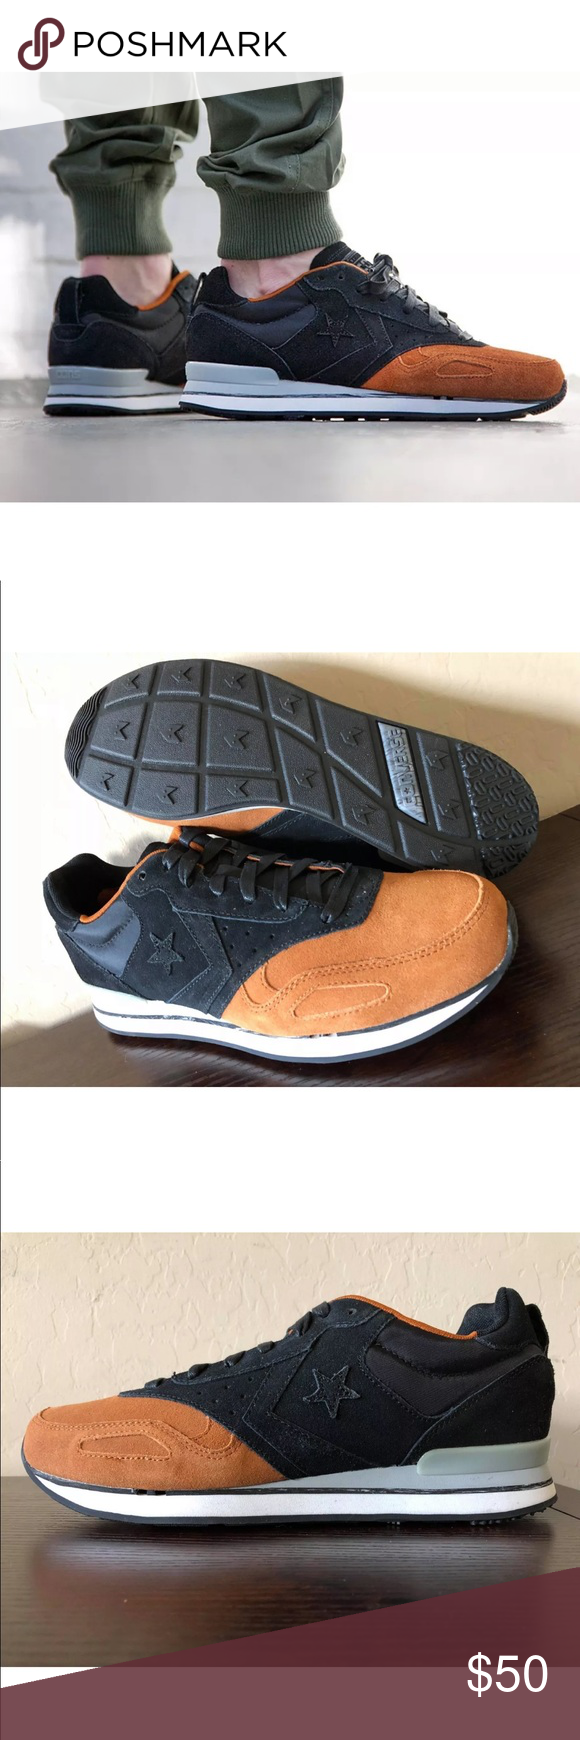 e45d3e1ca0e5 Men s Converse Malden Racer Ox Black Auburn AUTHENTIC CONVERSE MALDEN RACER  RETRO RUNNING SHOES MEN S SIZE 11